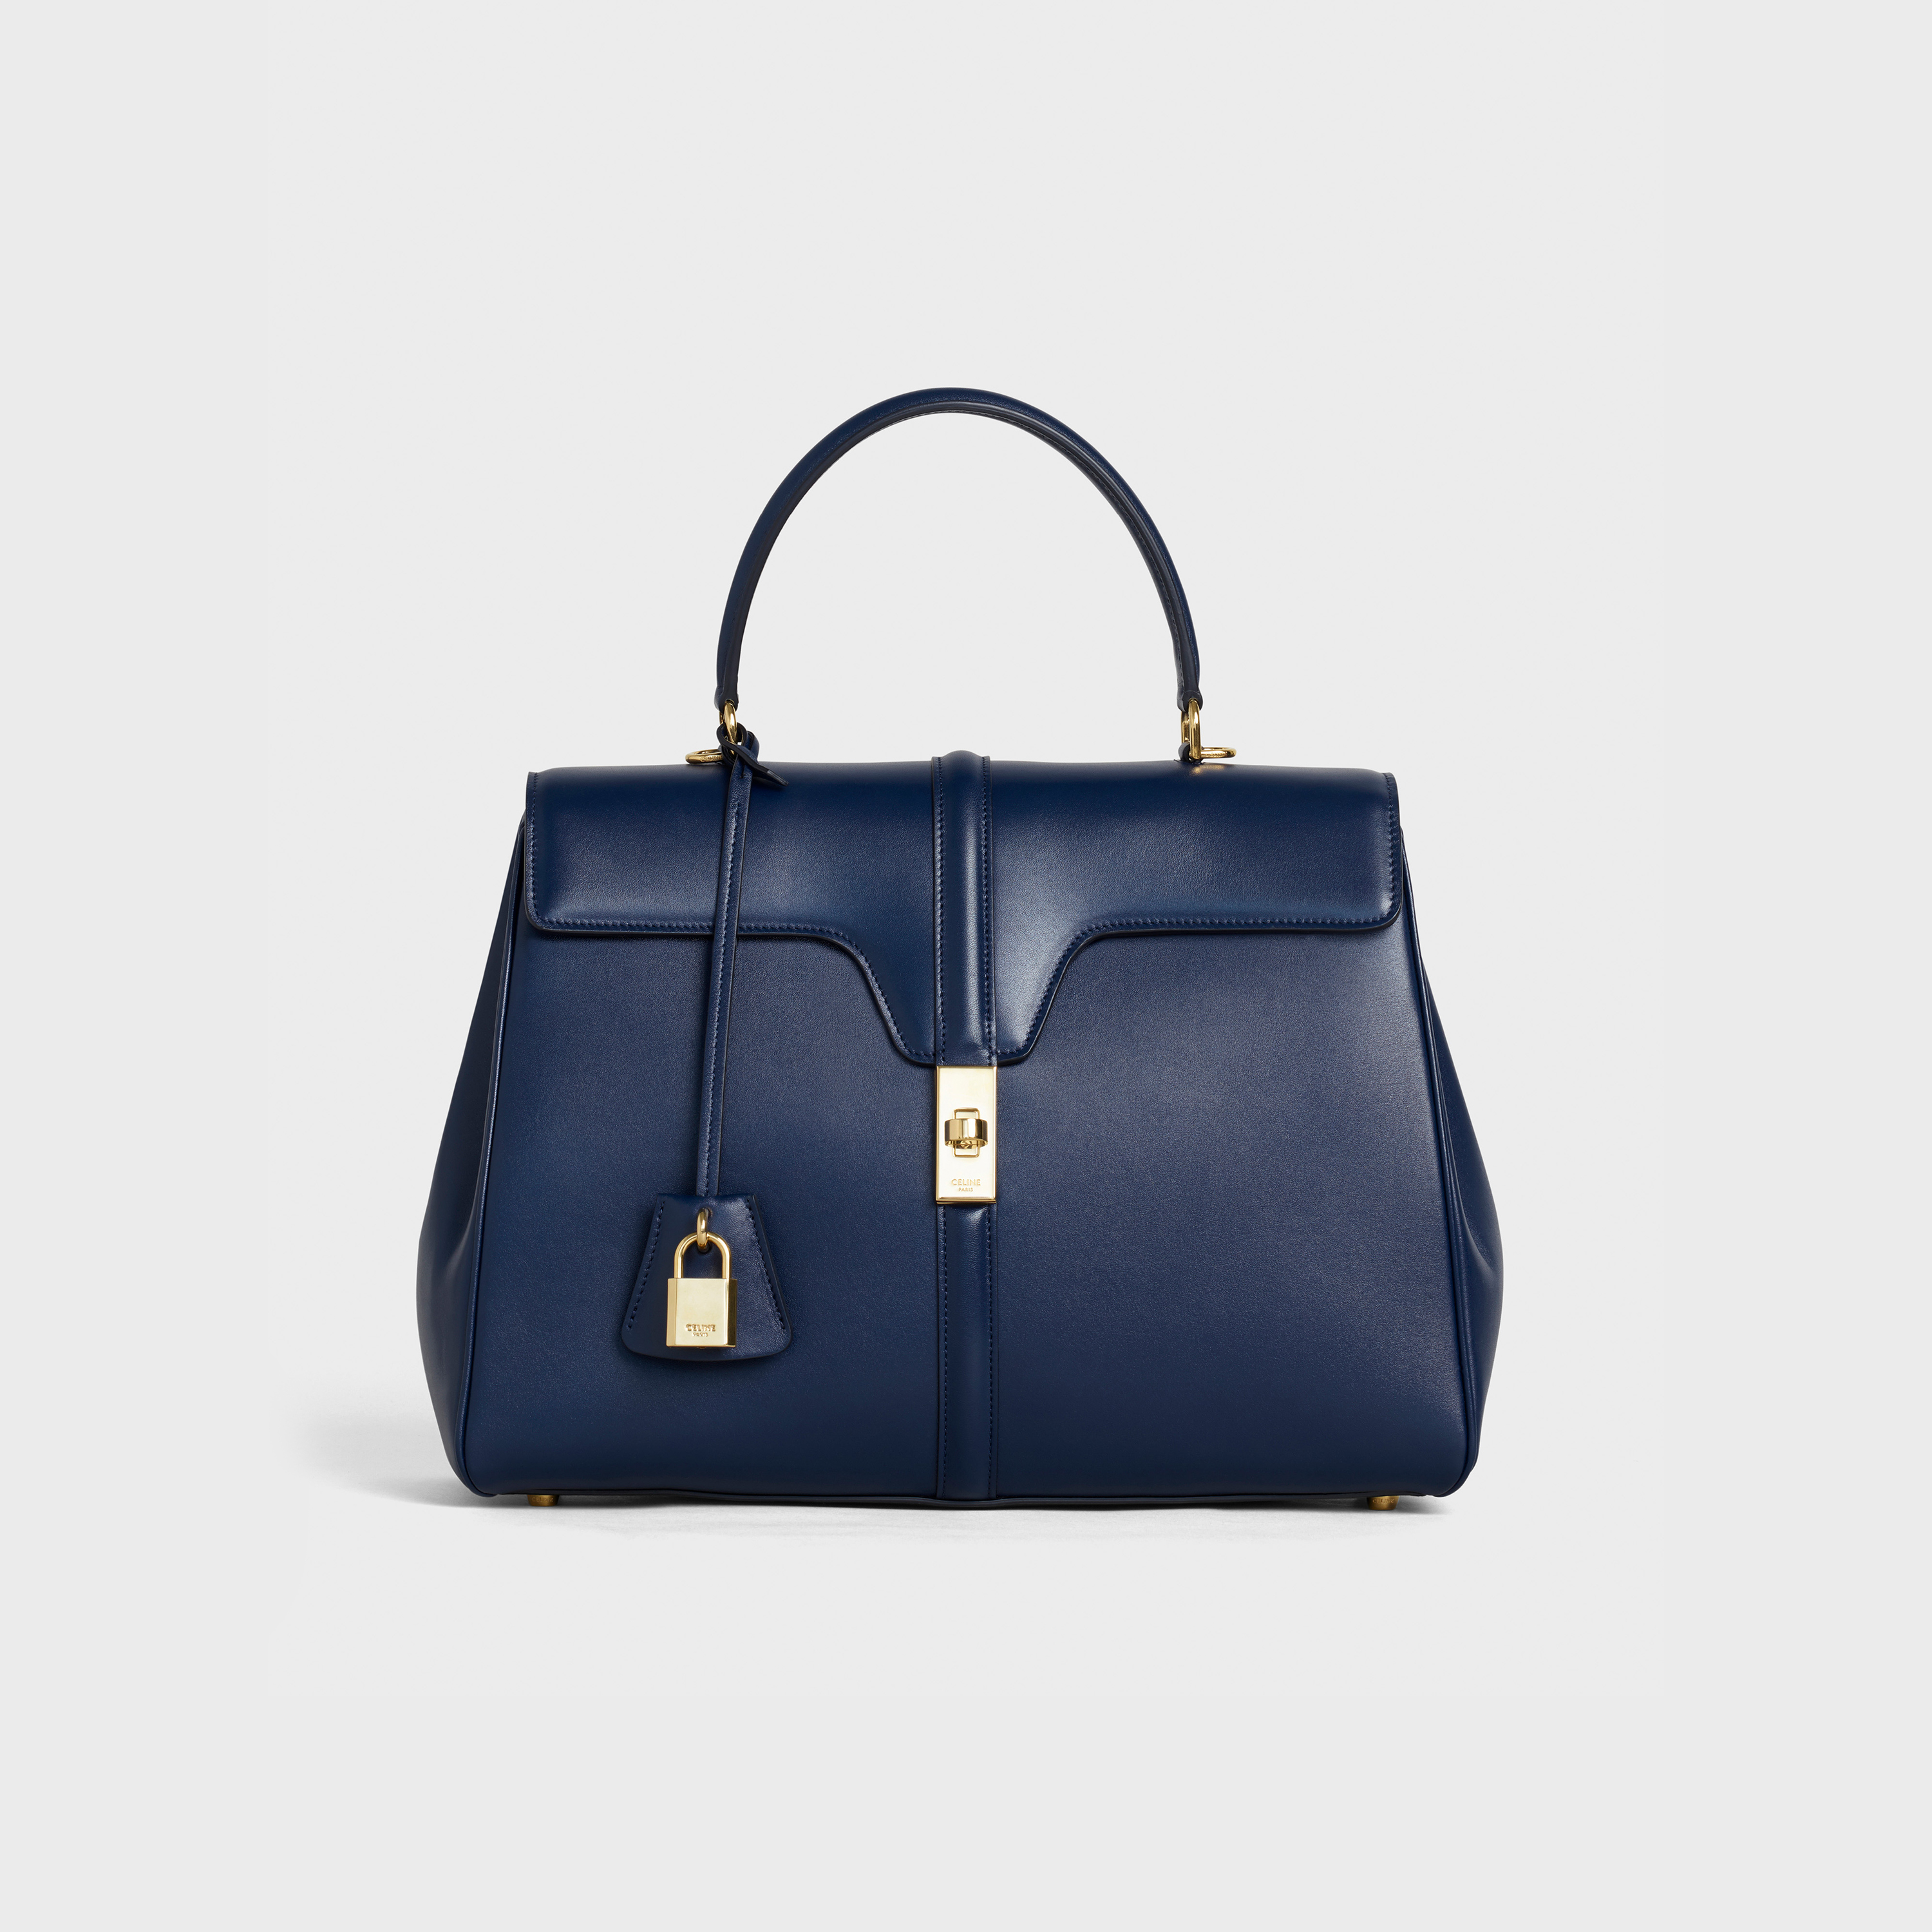 Medium 16 Bag in Satinated Calfskin - Dark blue